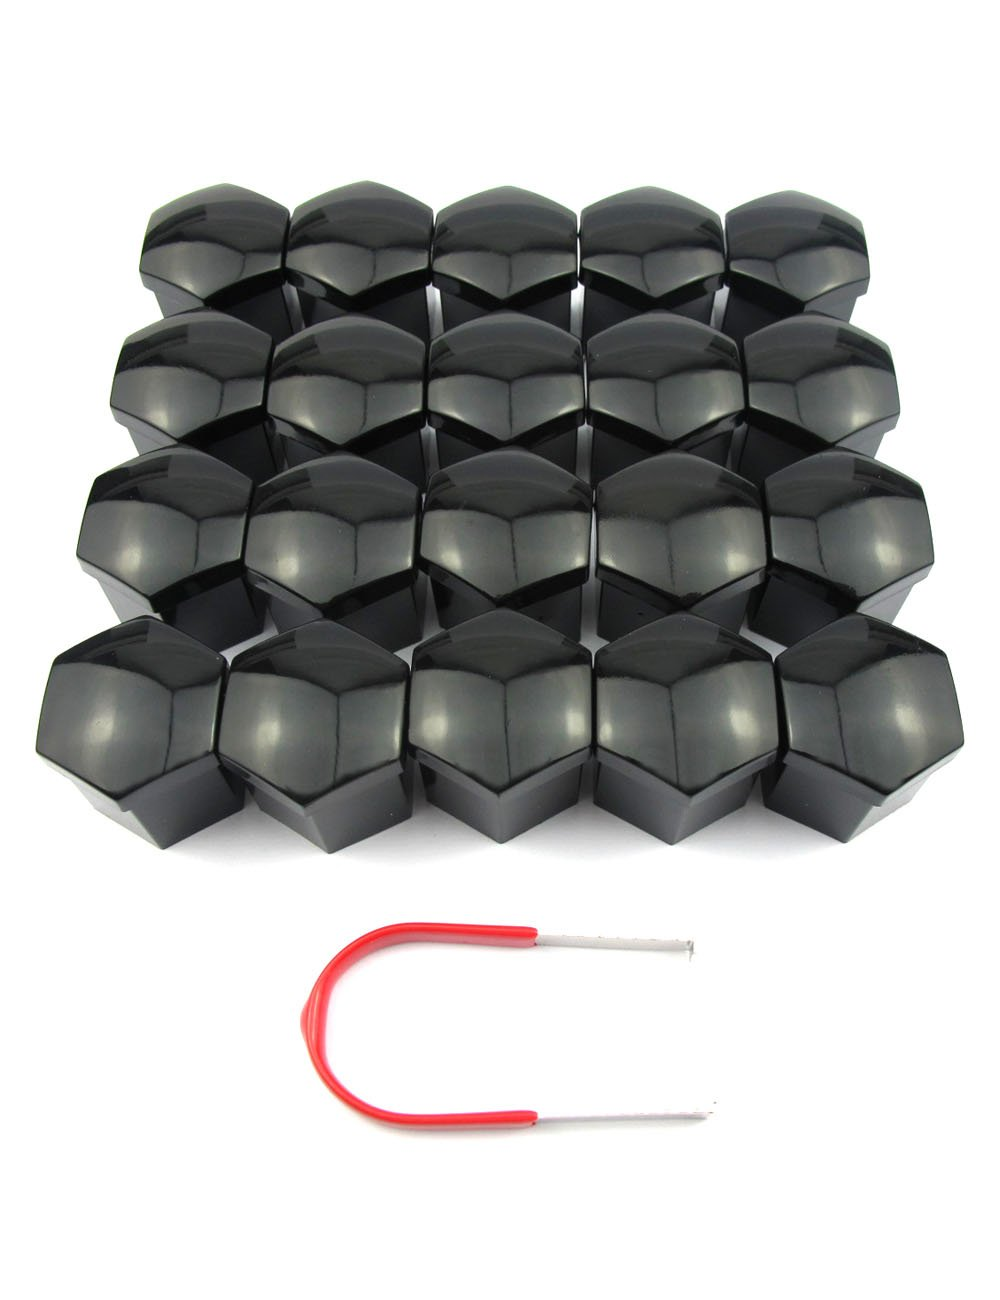 20PCs 21mm Black Plastic Bolts Covers Nut Protector and Removal Tool Car Wheel Universal